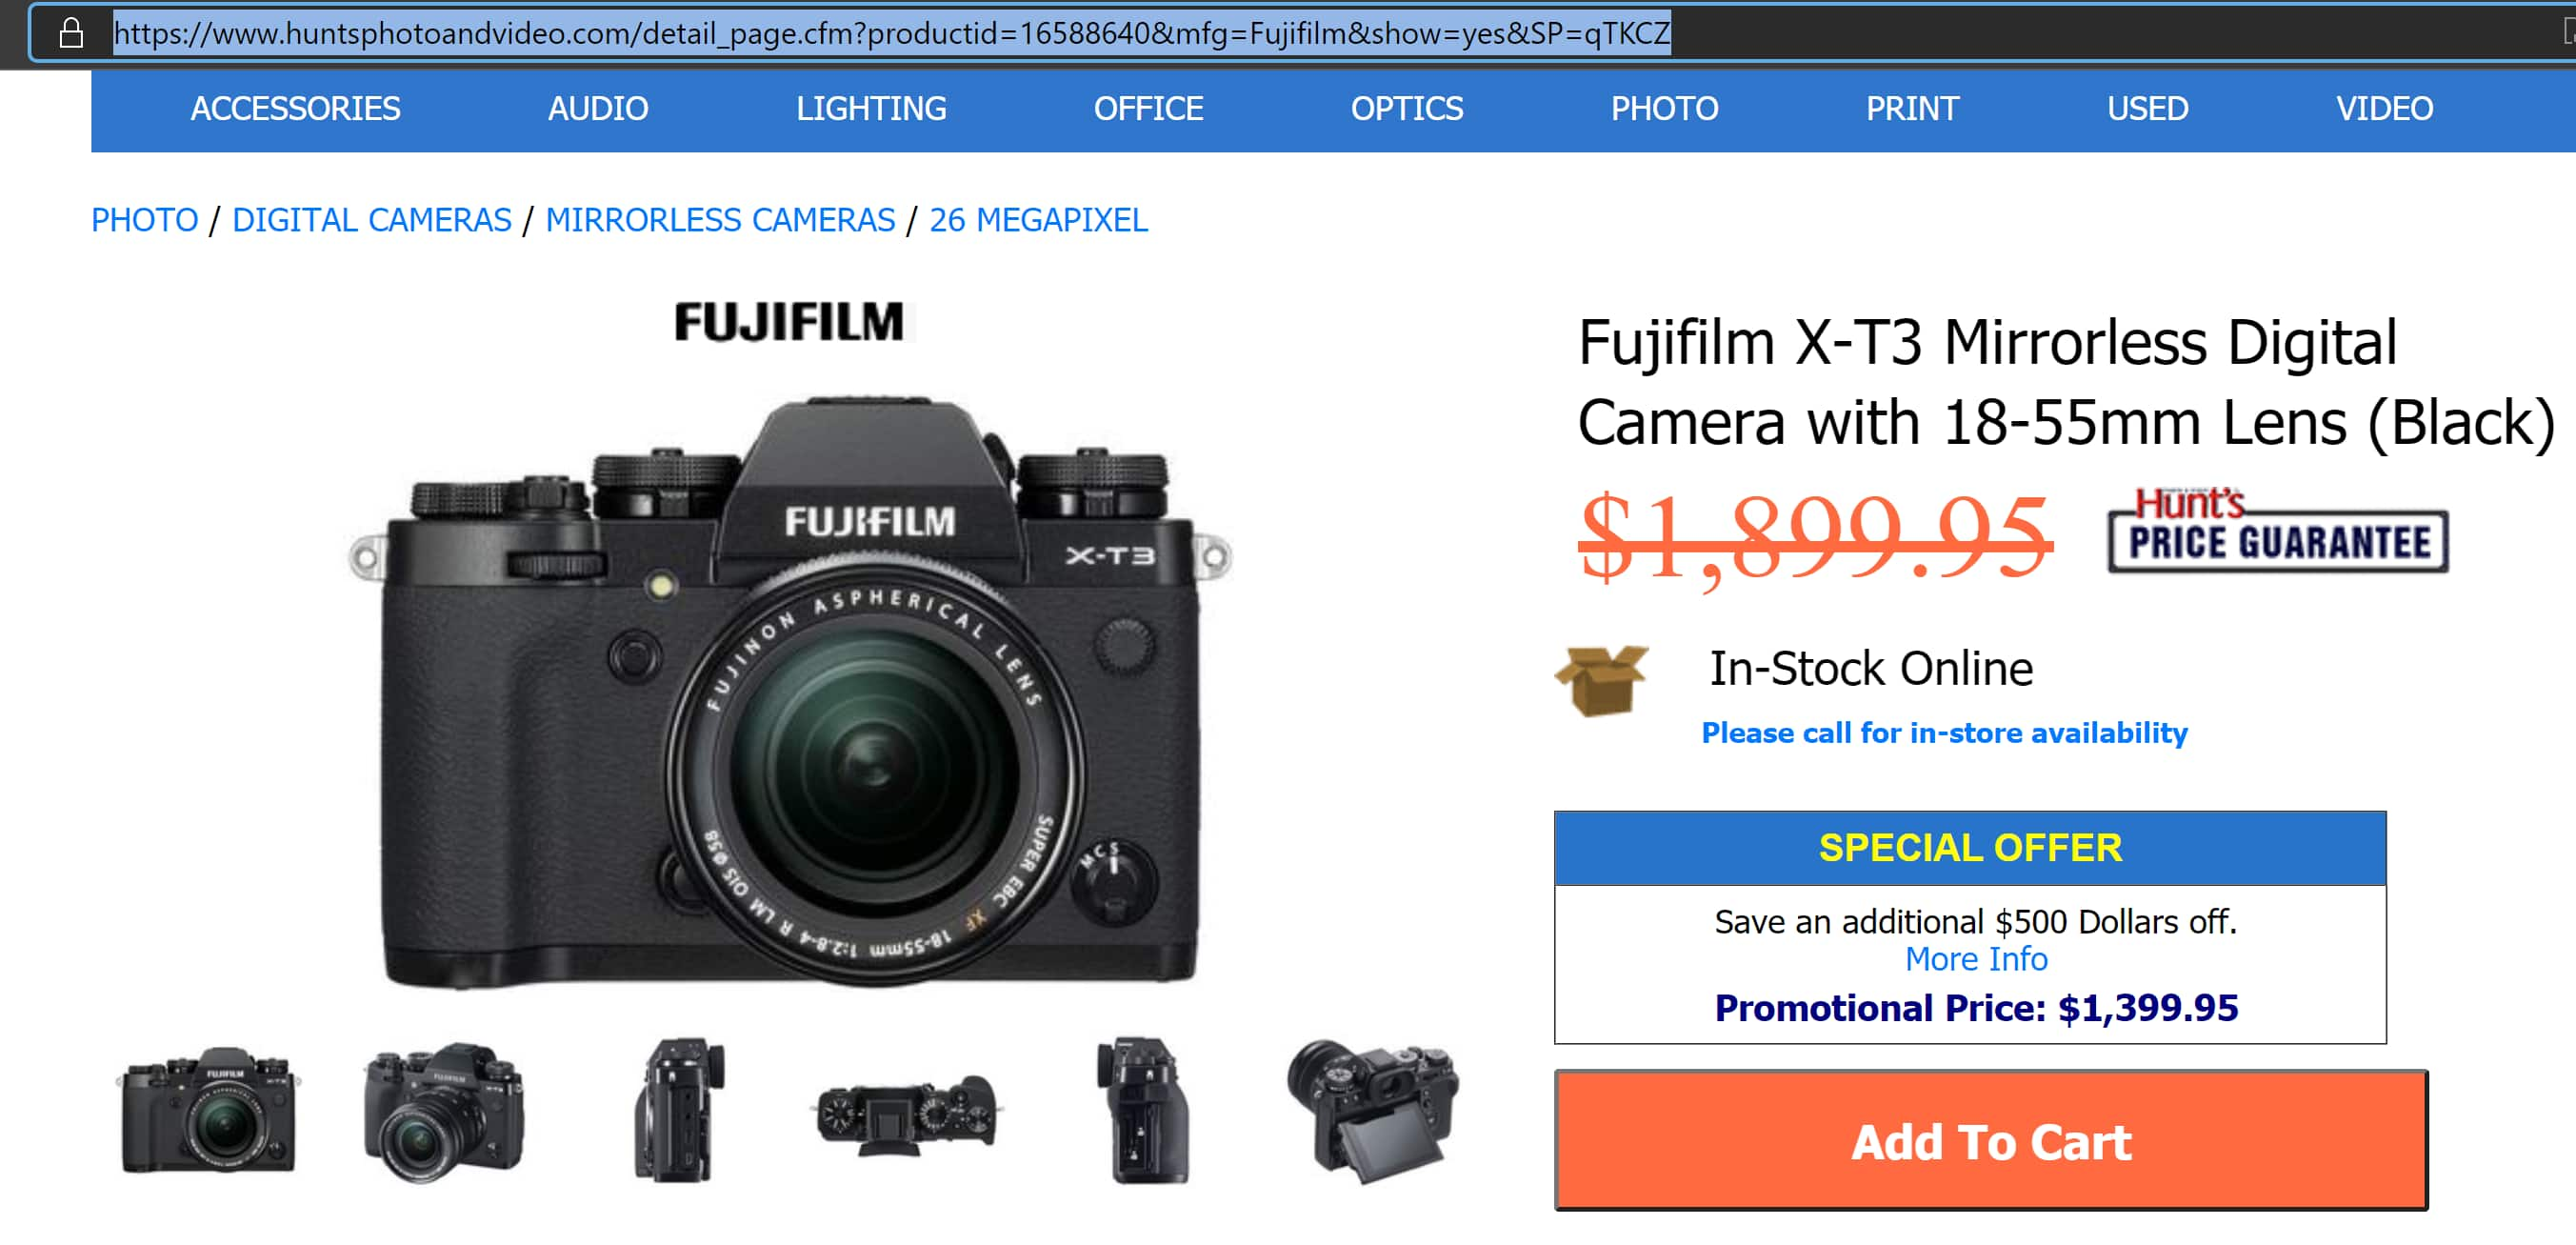 Fujifilm X-T3 Body and XF 18-55mm Lens at Hunt's Photo and Video - $1399.95